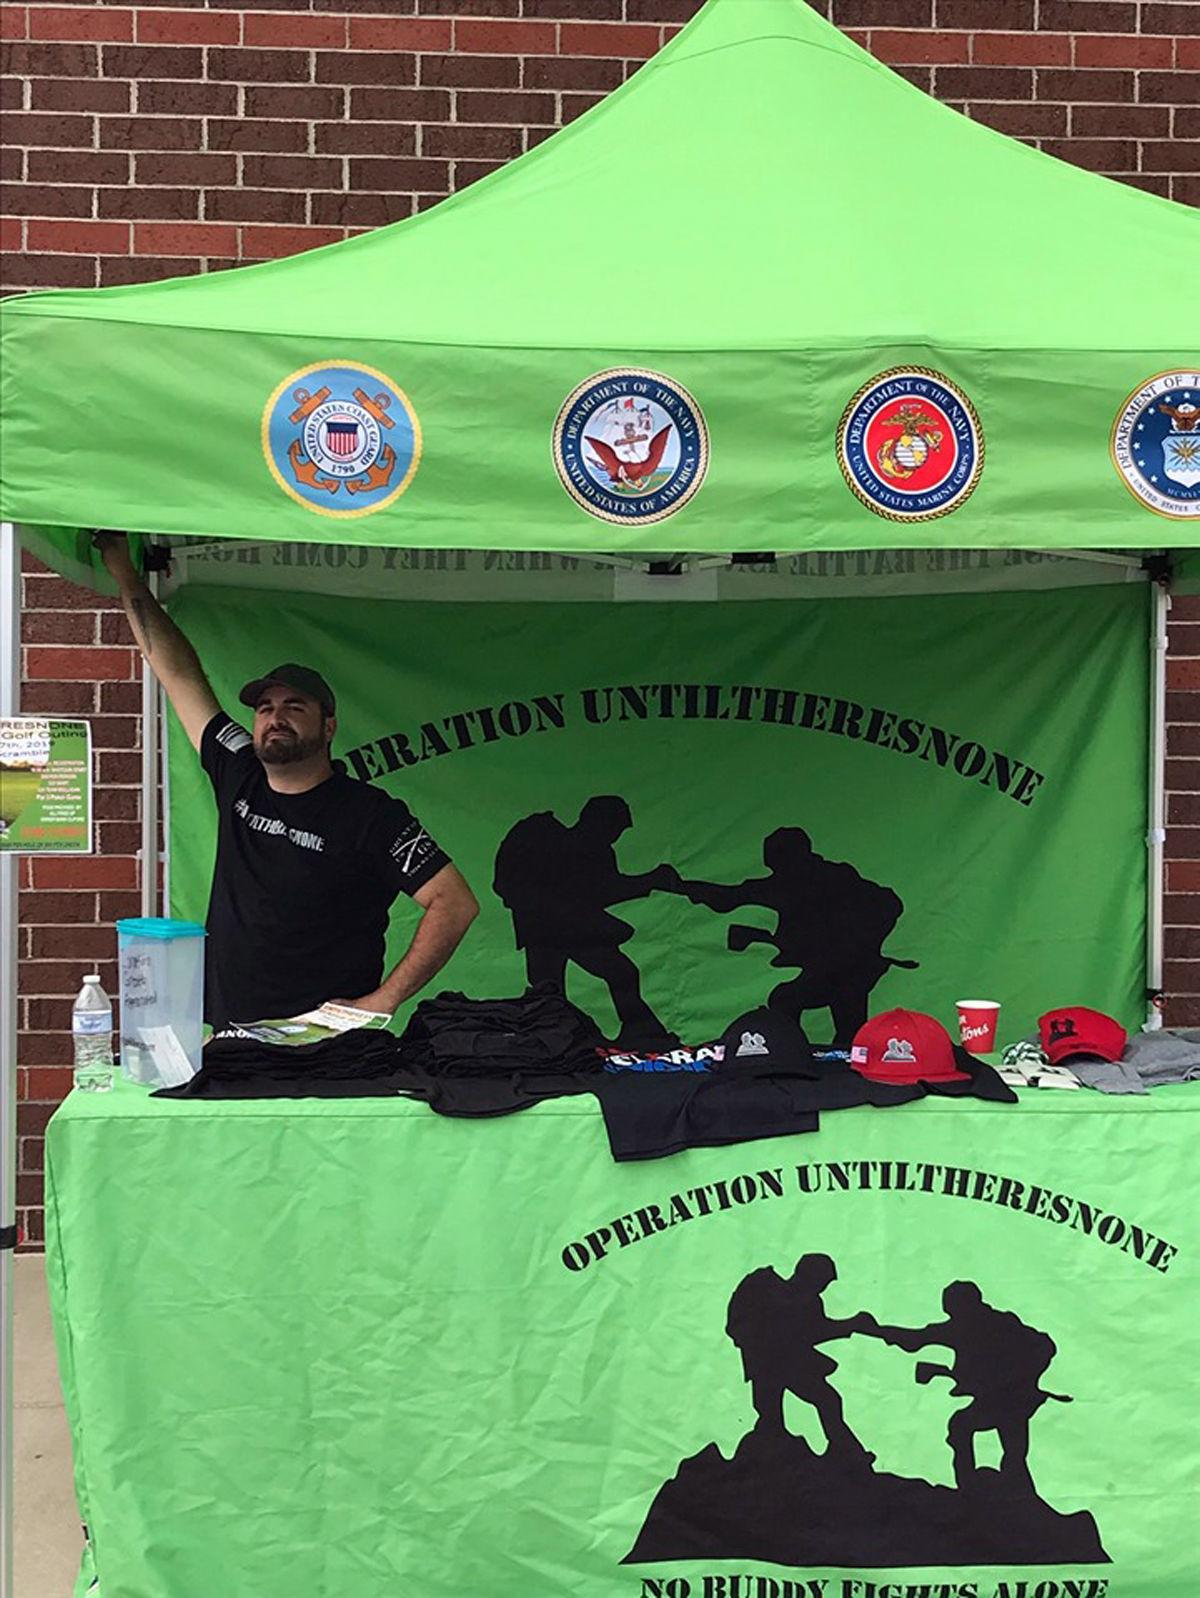 Local non-profit group offers support for veterans in crisis